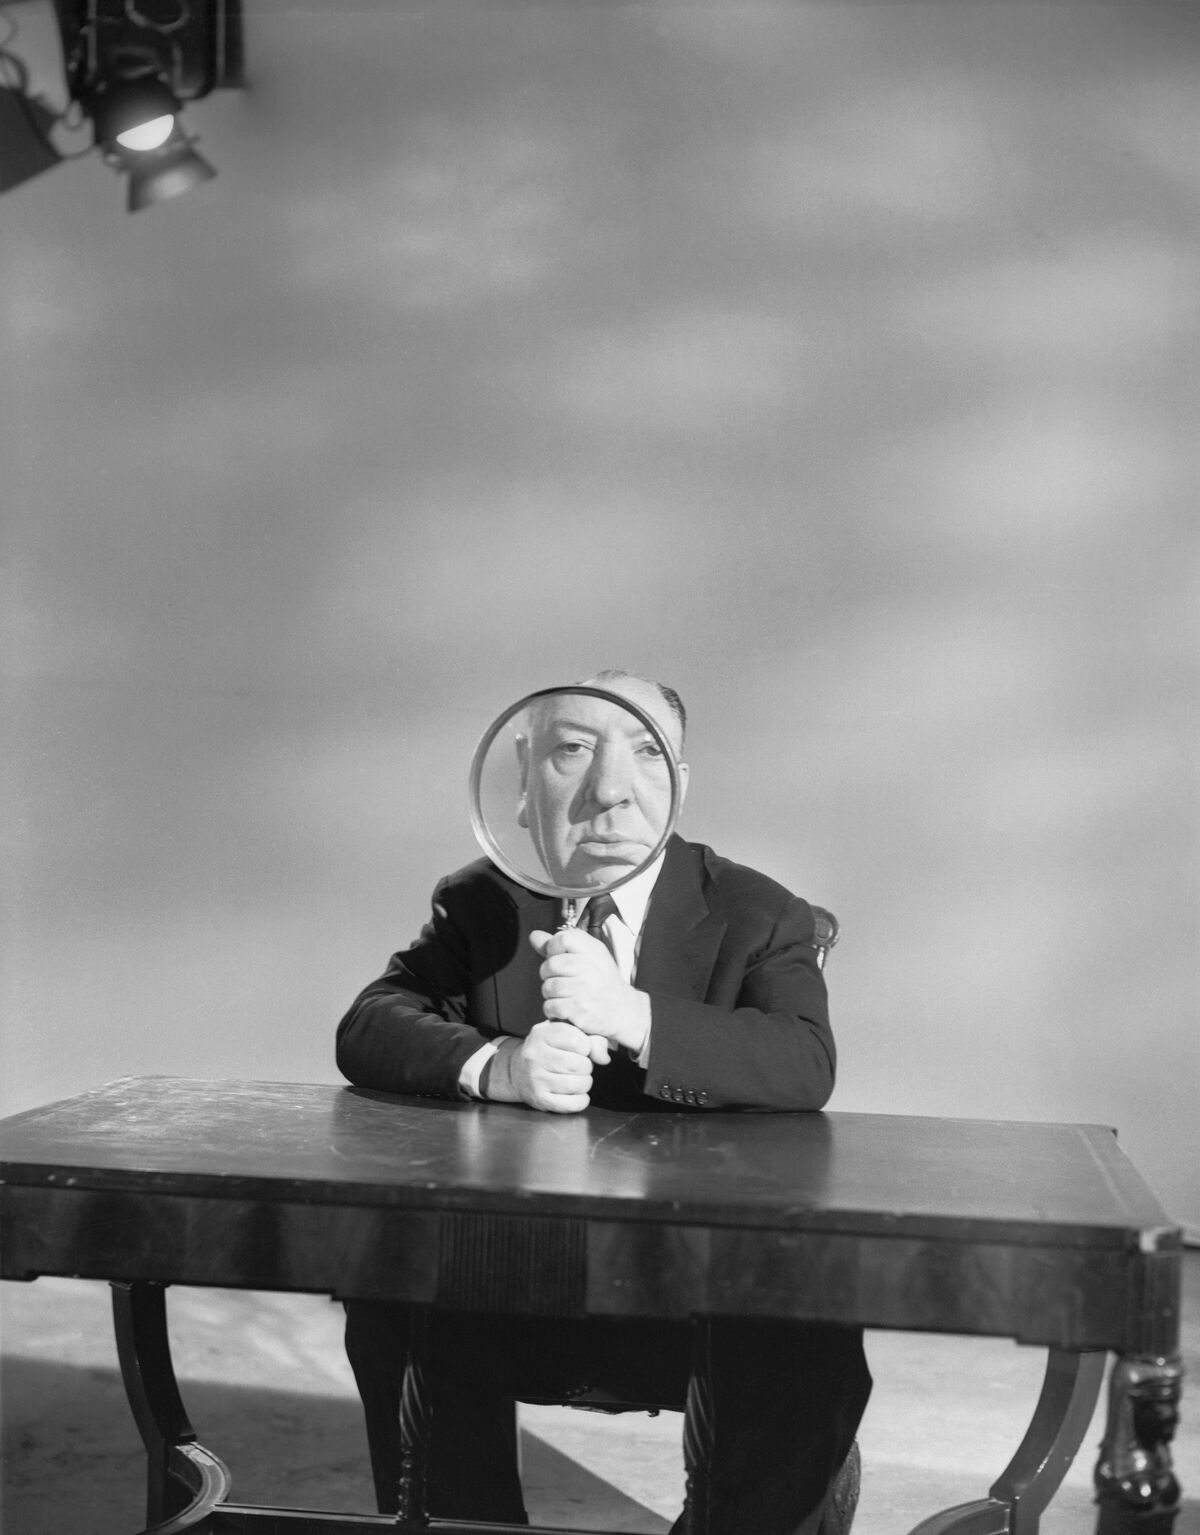 Alfred Hitchcock plays with a magnifying glass on the set of his television show Alfred Hitchcock Presents, 1956. Photo by Bettmann/Getty Images.